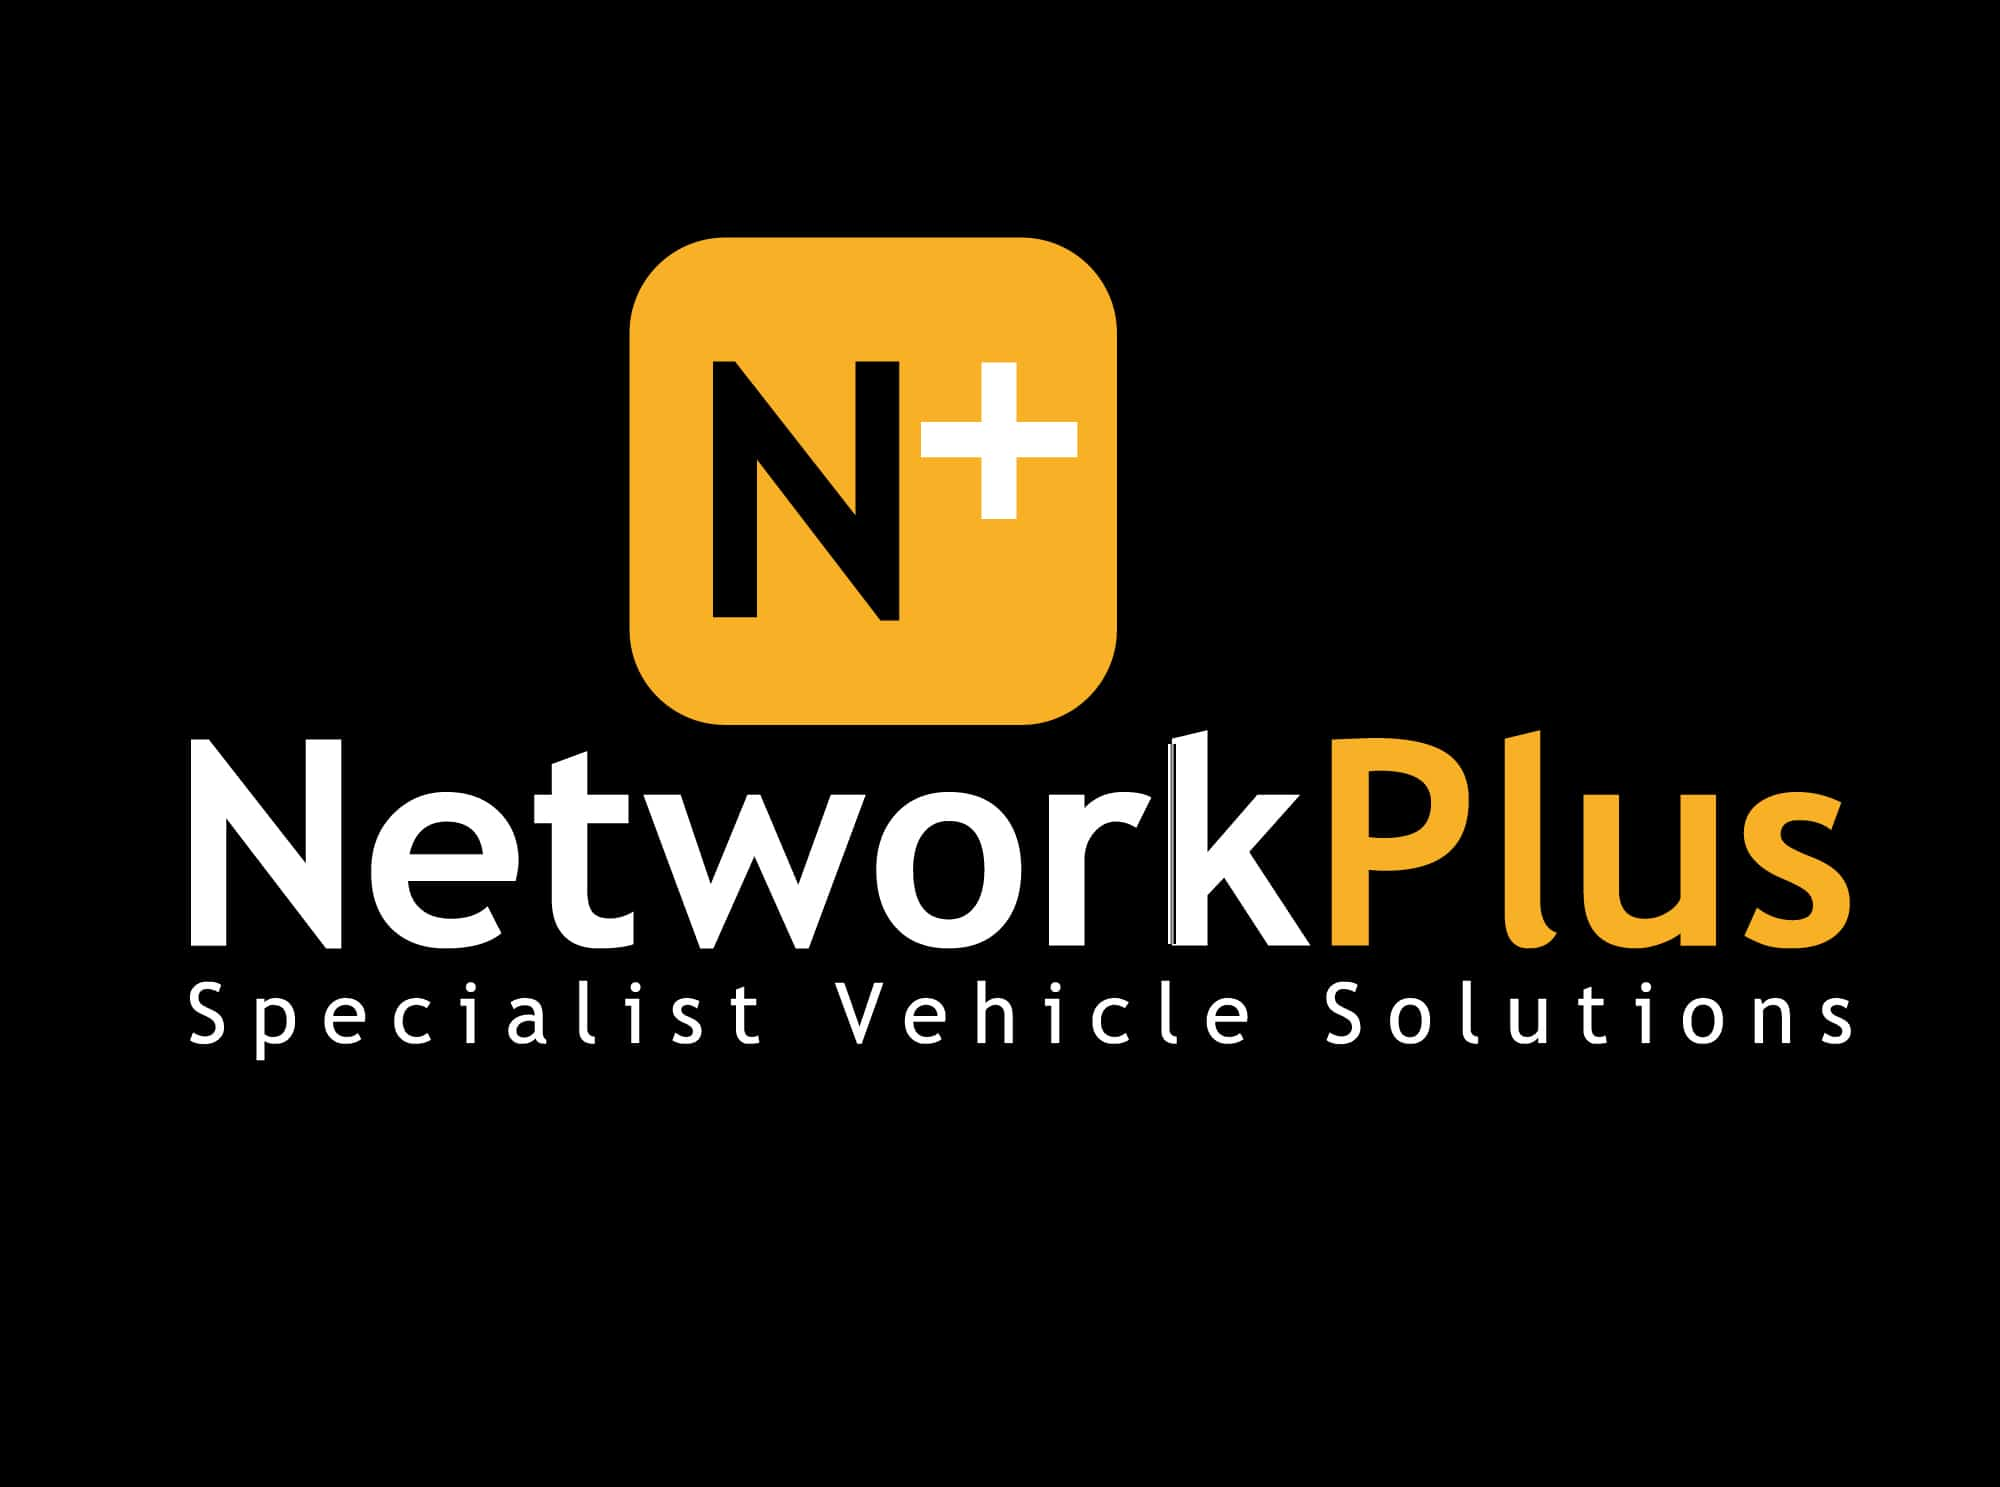 Network Plus logo against black